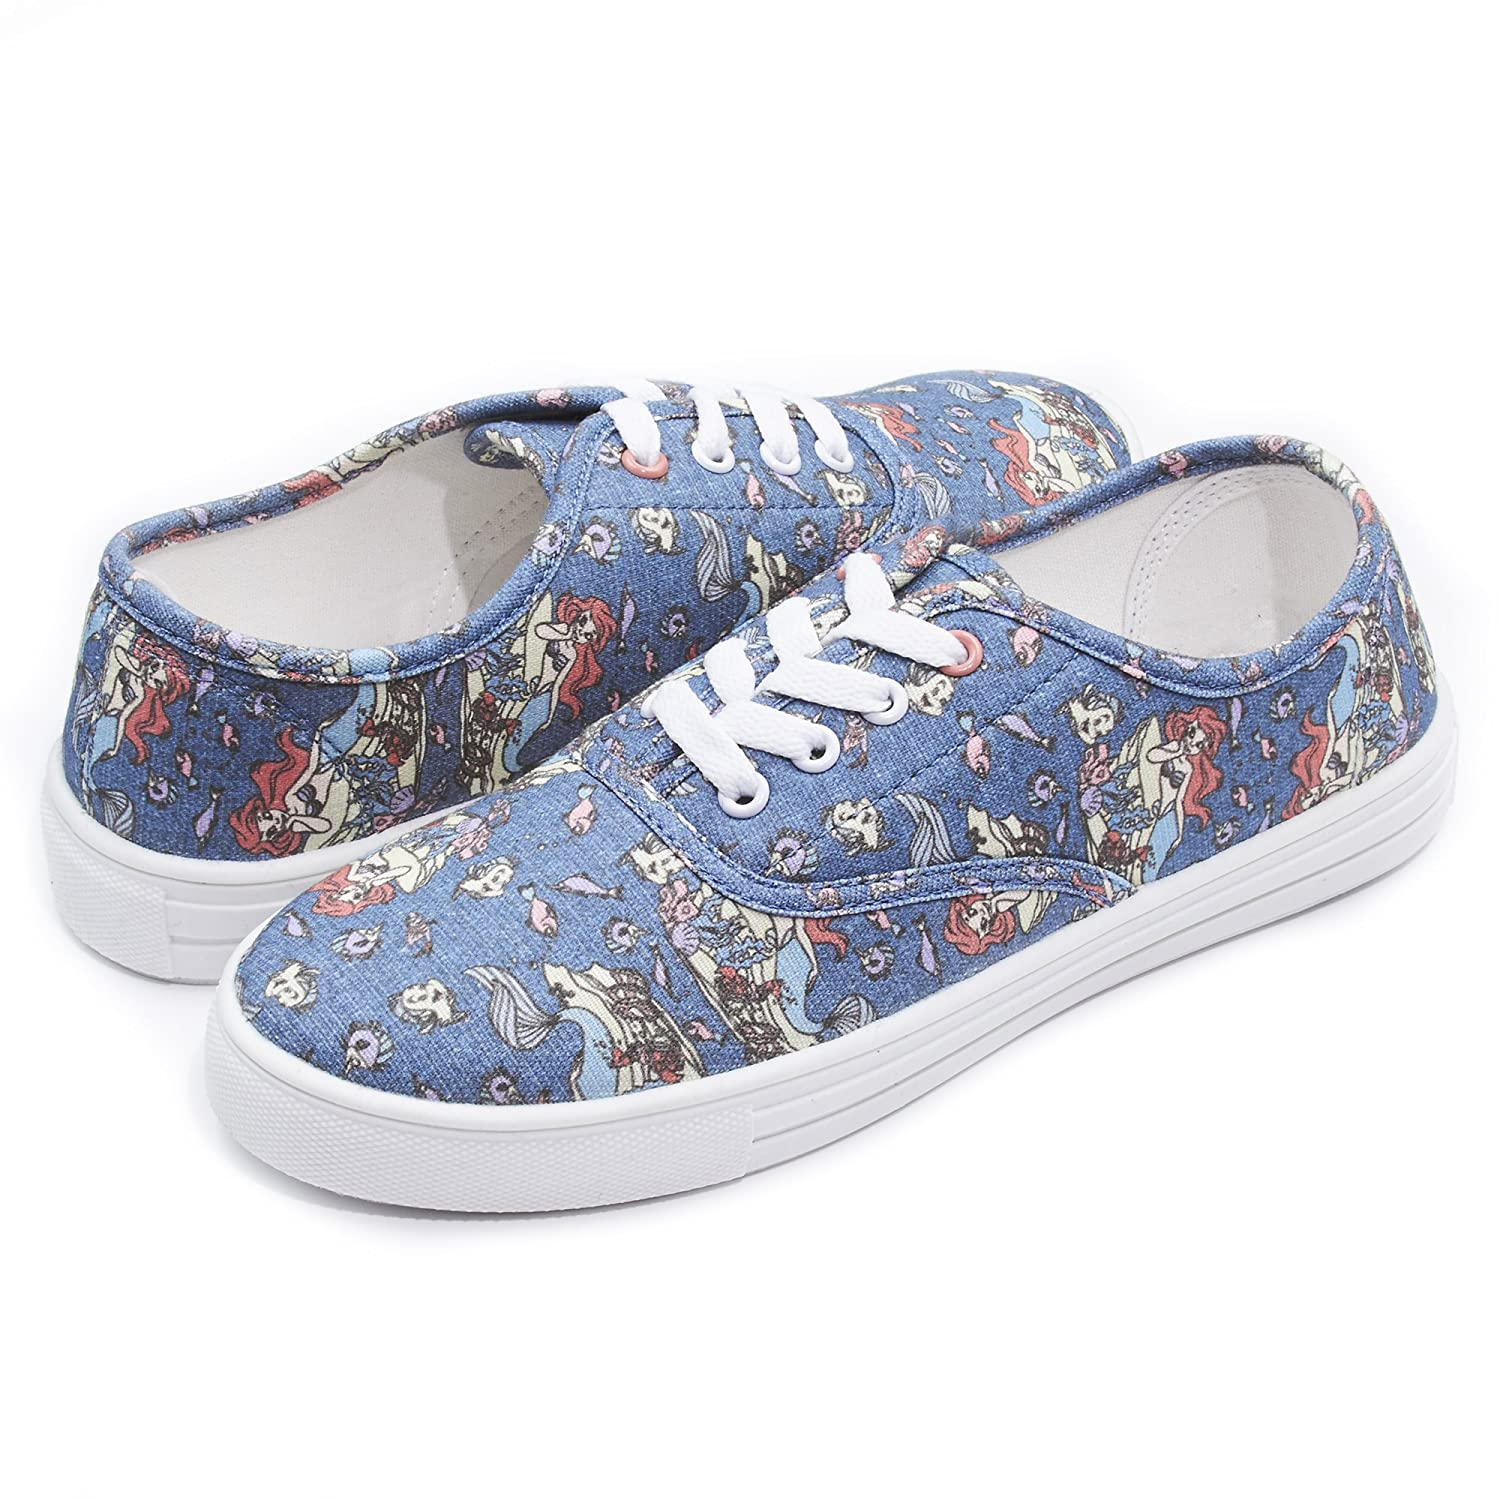 Disney Fairytale Junior Teen Girls Lace up Low Top Canvas Sneakers (See More Designs and Sizes) B074CFYXKQ 6 B(M) US|Blue Multi